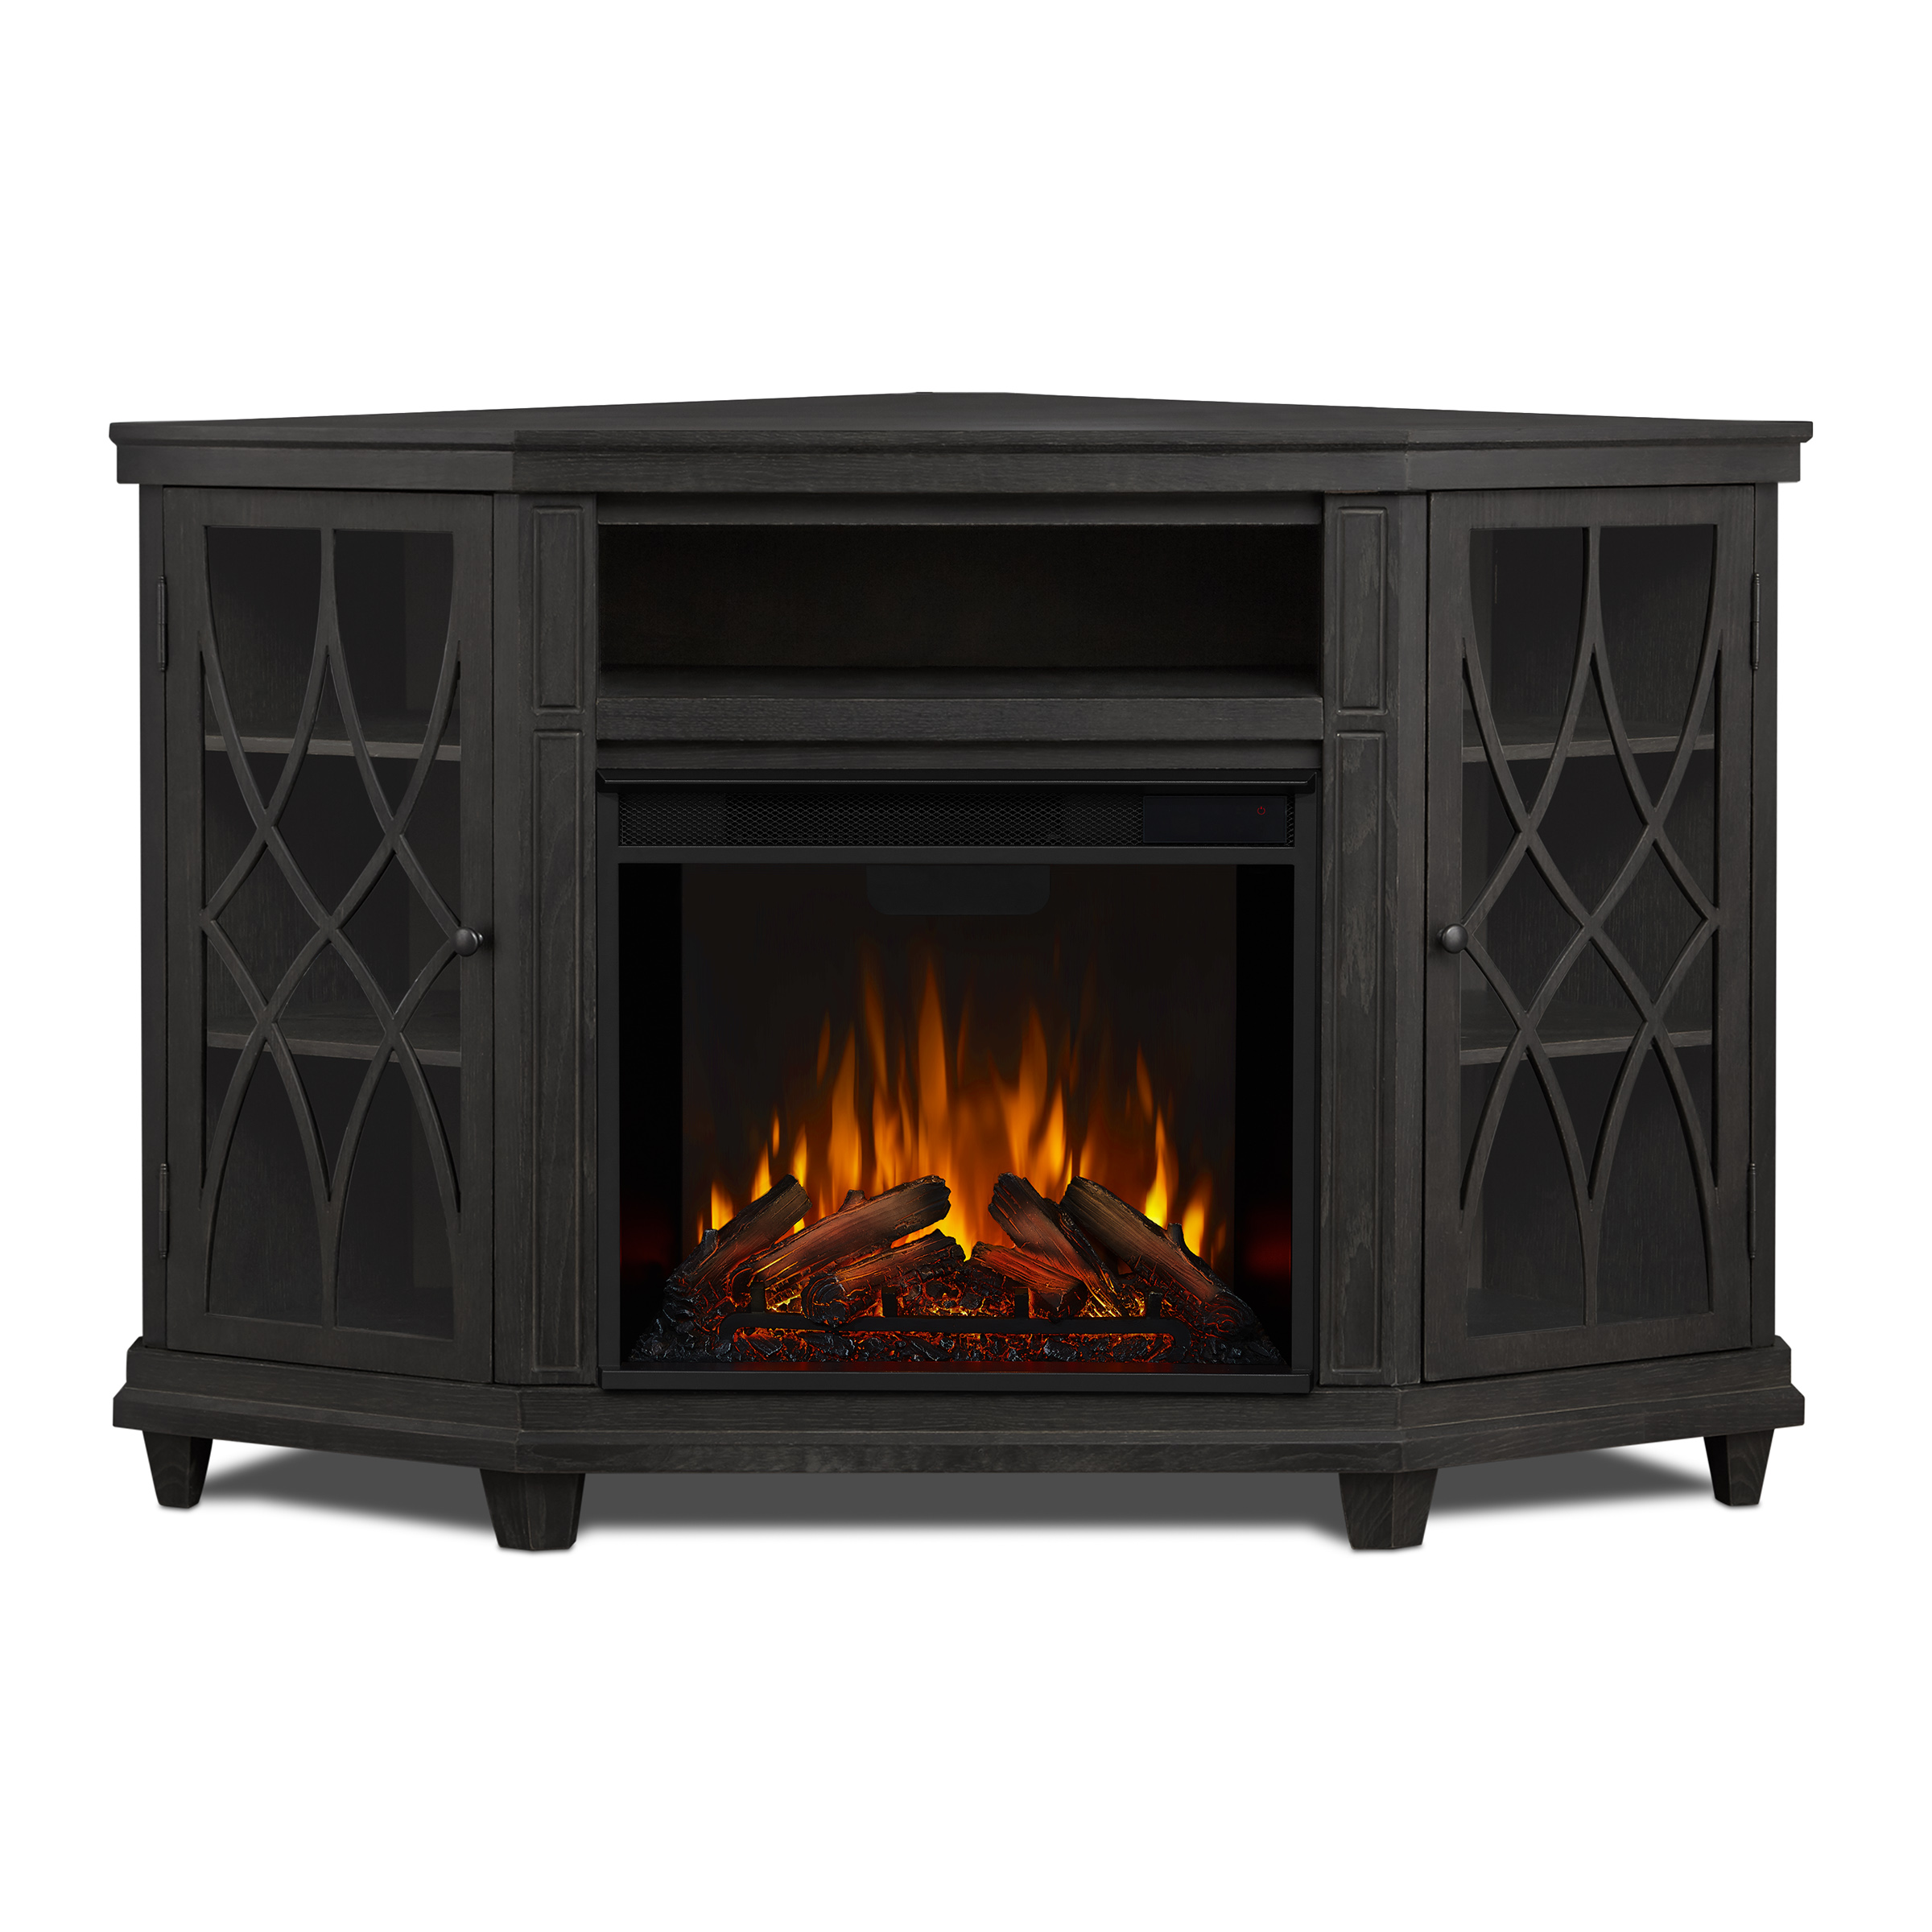 Gray Electric Fireplace Front